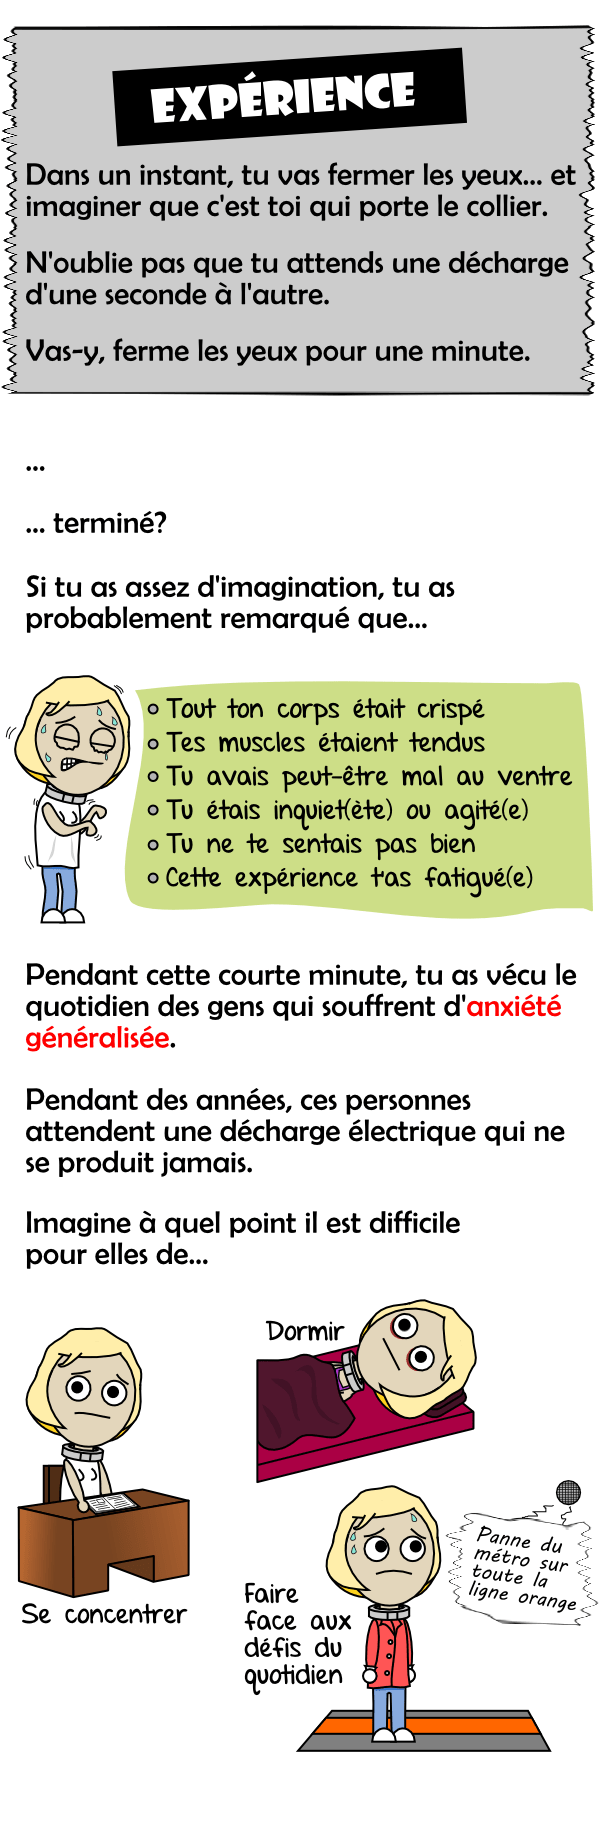 Symptômes de l'anxiété et difficultés au quotidien